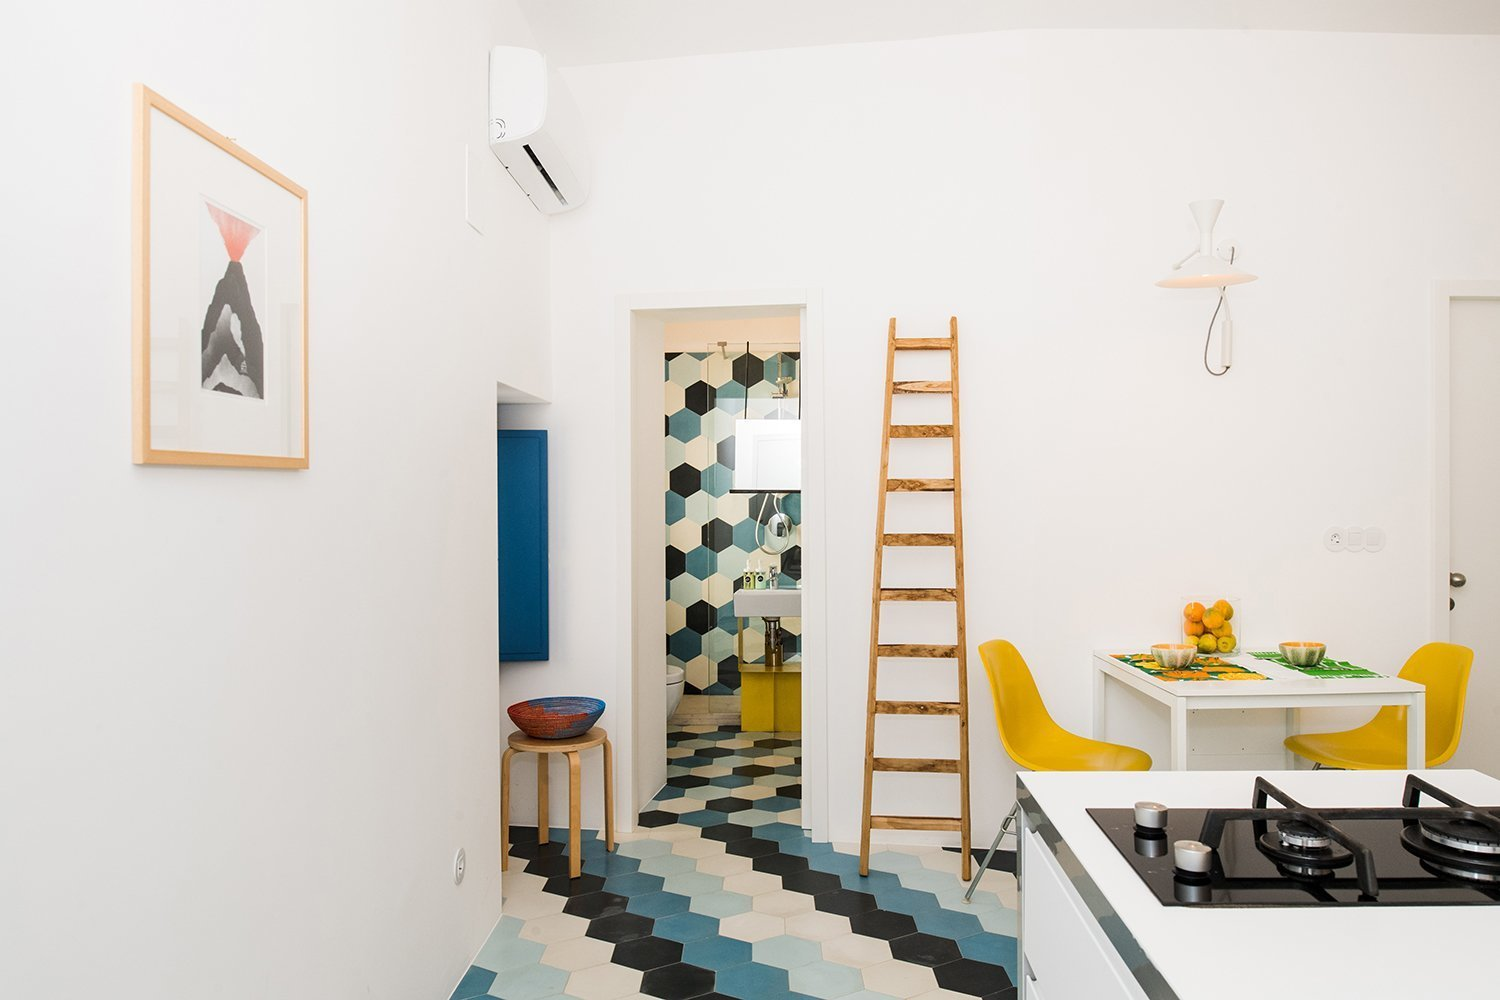 Dining Room, Stools, Chair, Table, Ceramic Tile Floor, and Wall Lighting The combined kitchen and dining space is compact yet efficient.  Photo 2 of 13 in An Old Fisherman's House in Sicily Is Transformed Into 2 Apartments